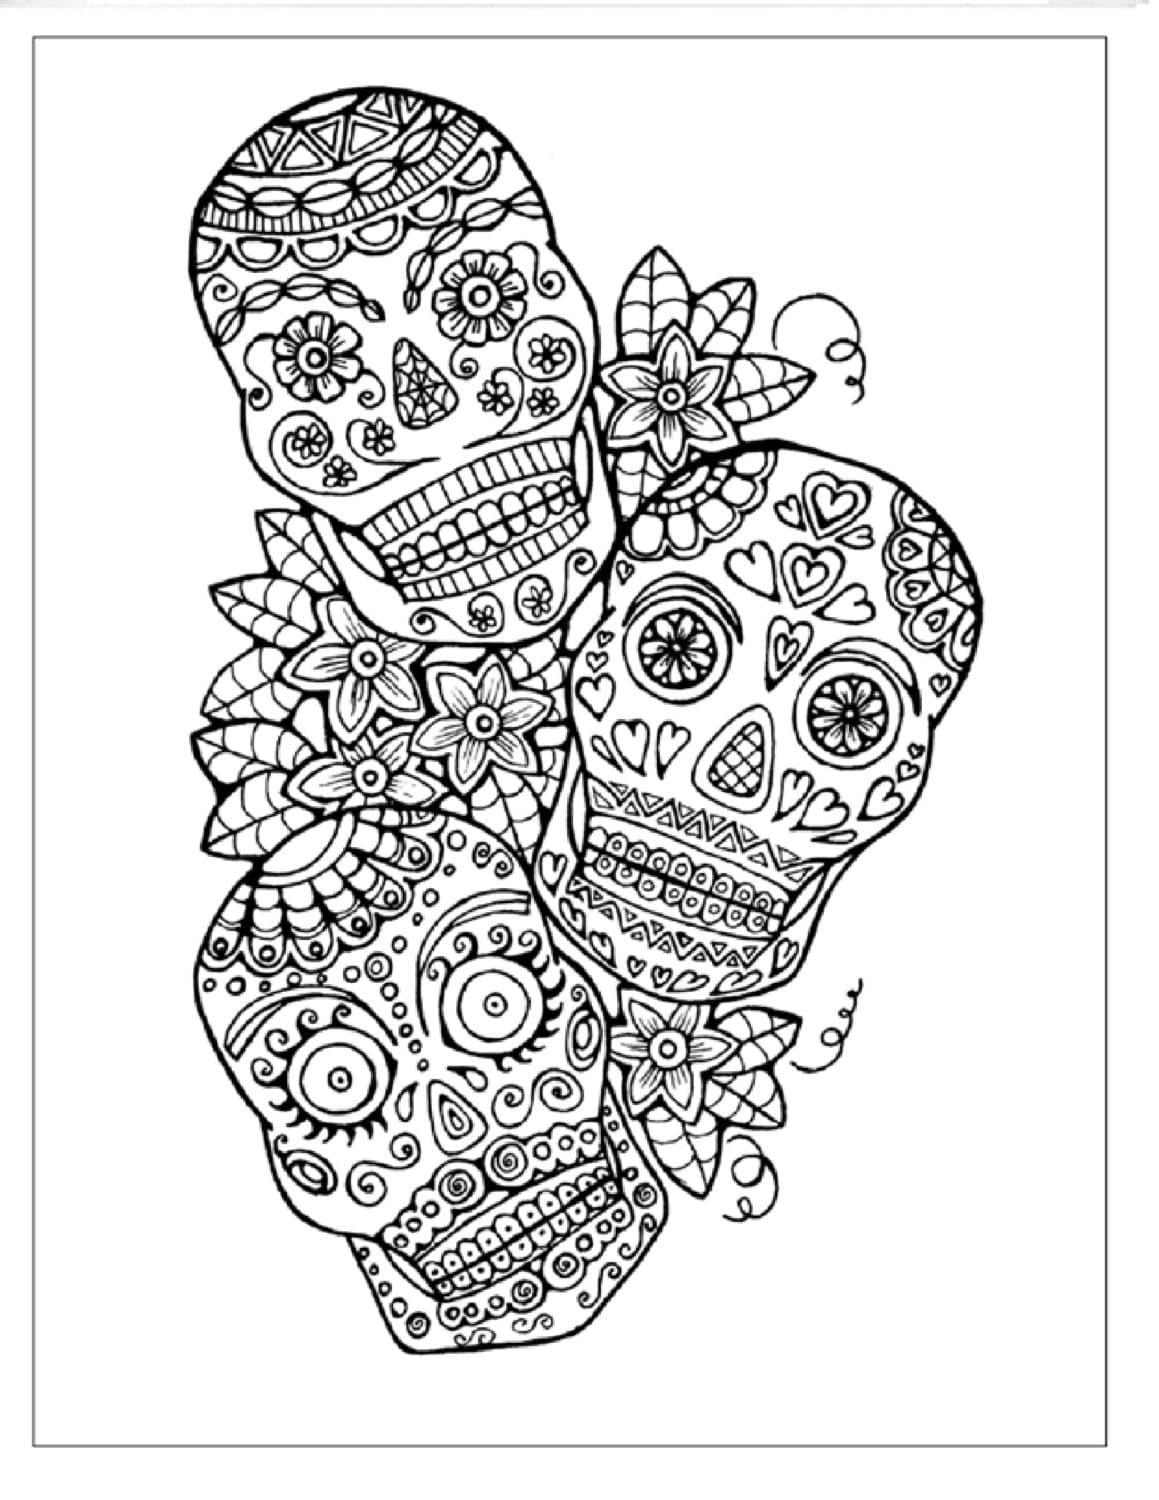 This is a photo of Sweet Printable Sugar Skull Coloring Pages